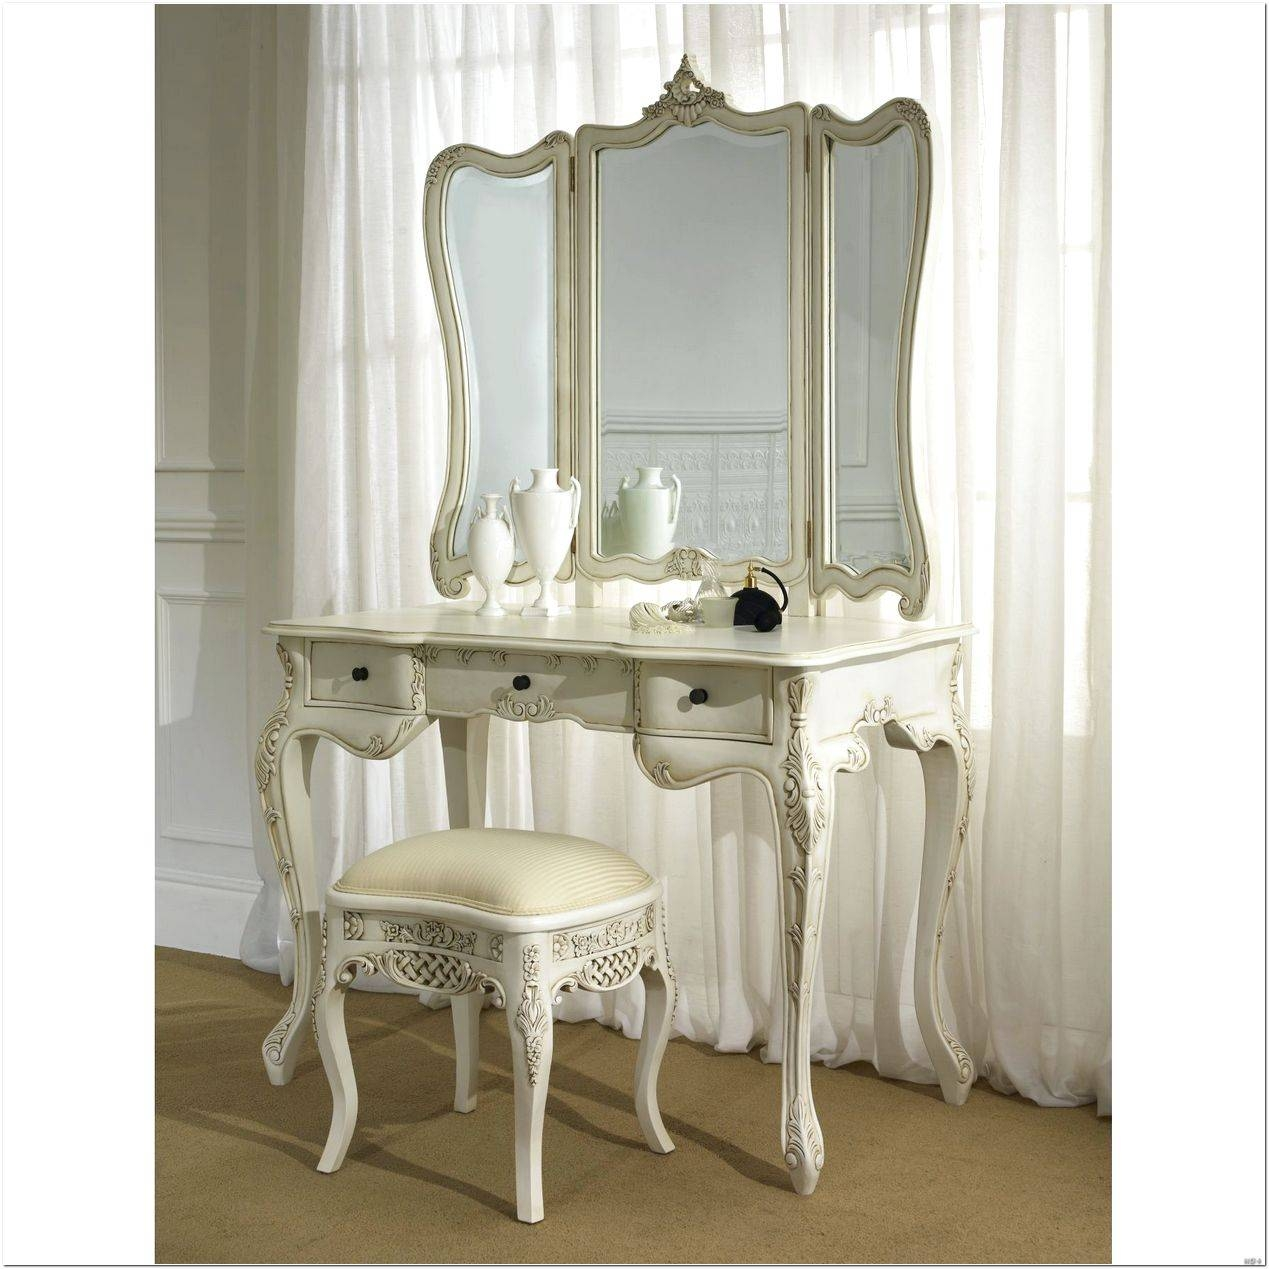 French Style Dressing Table Mirror Design Ideas   Interior Design With French Style Dressing Table Mirrors (Photo 13 of 25)